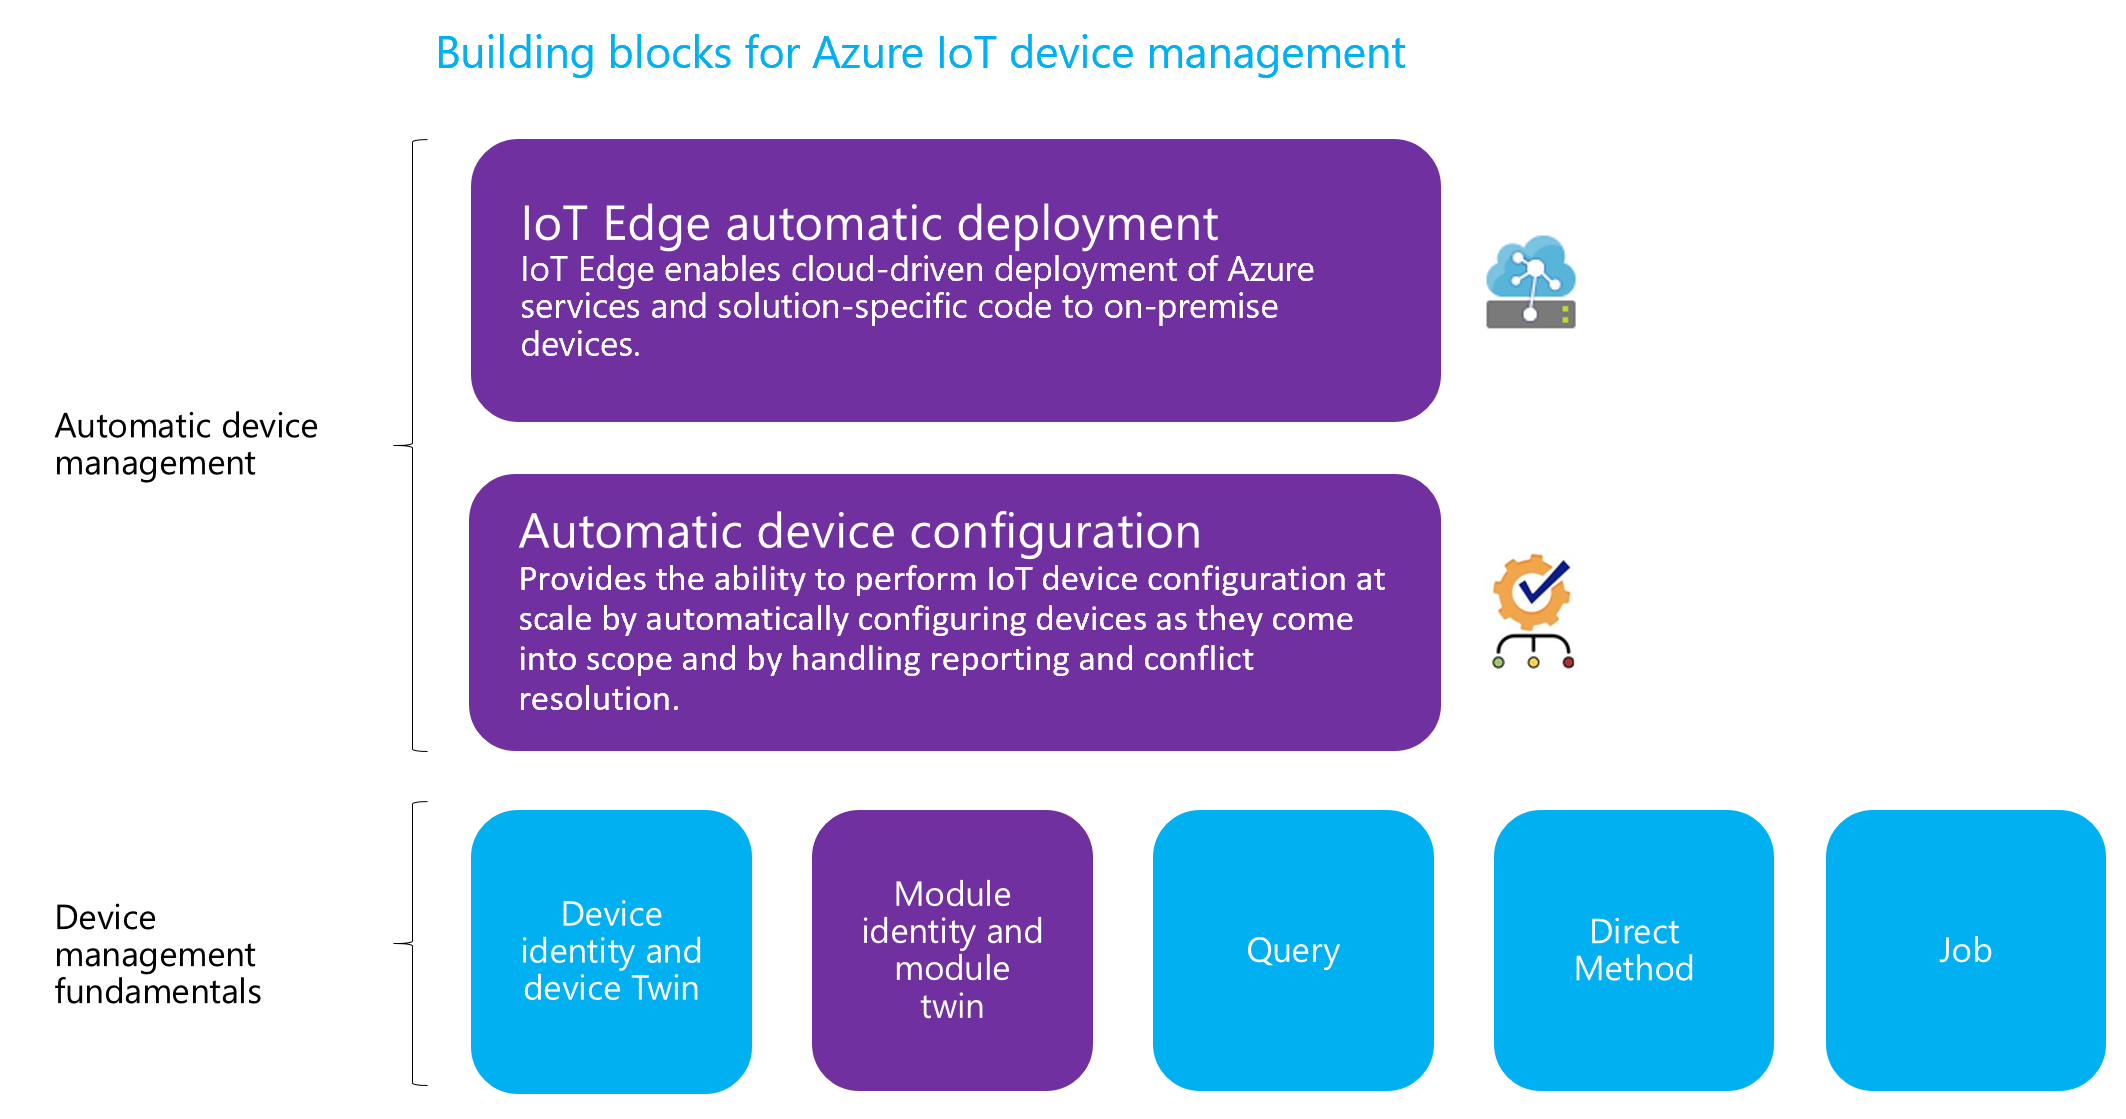 Building blocks for Azure IoT device management